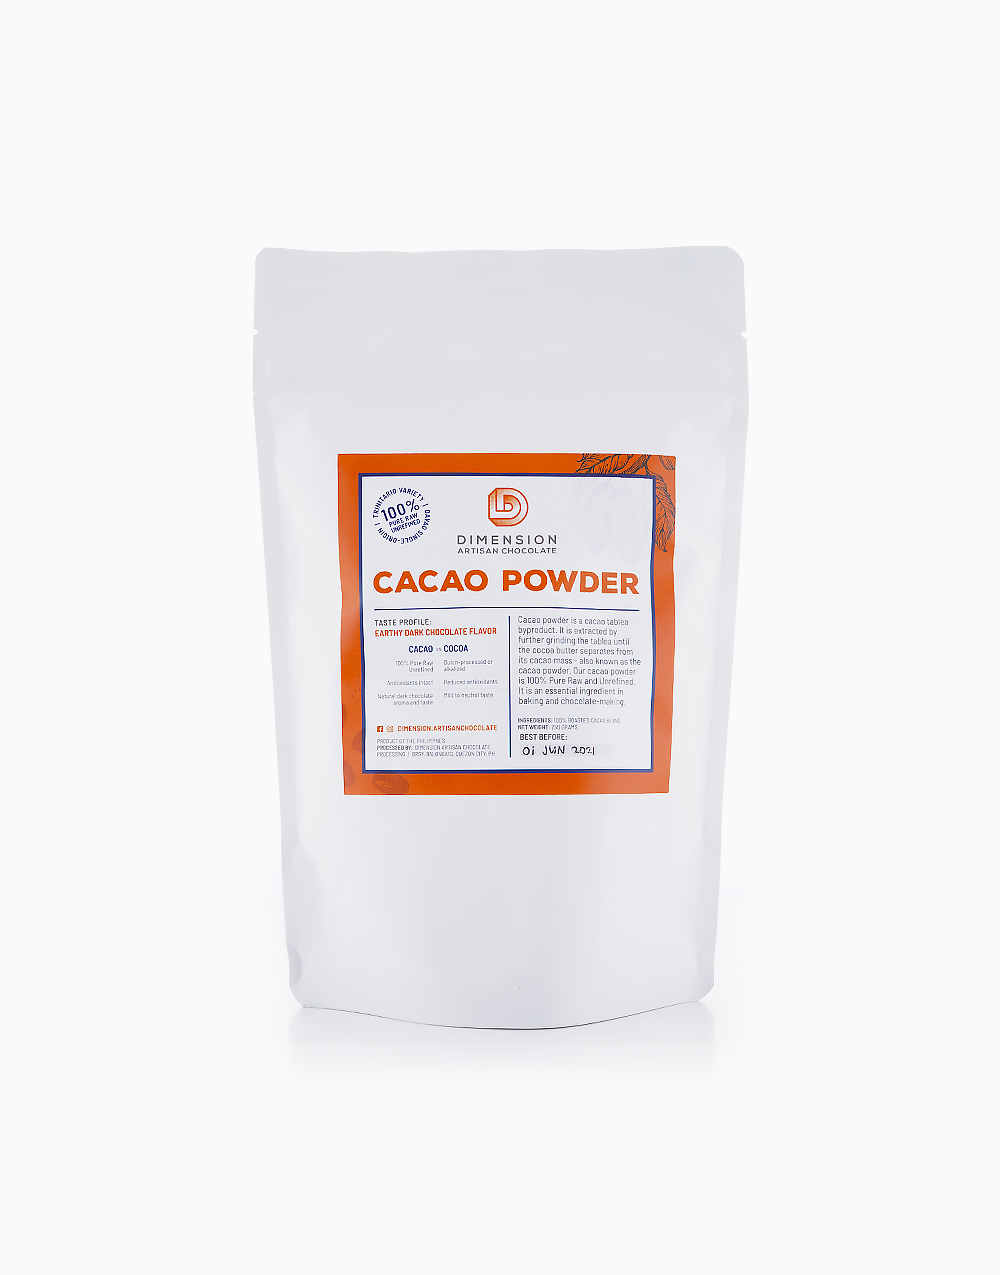 Cacao Powder (250g) by Dimension Artisan Chocolate